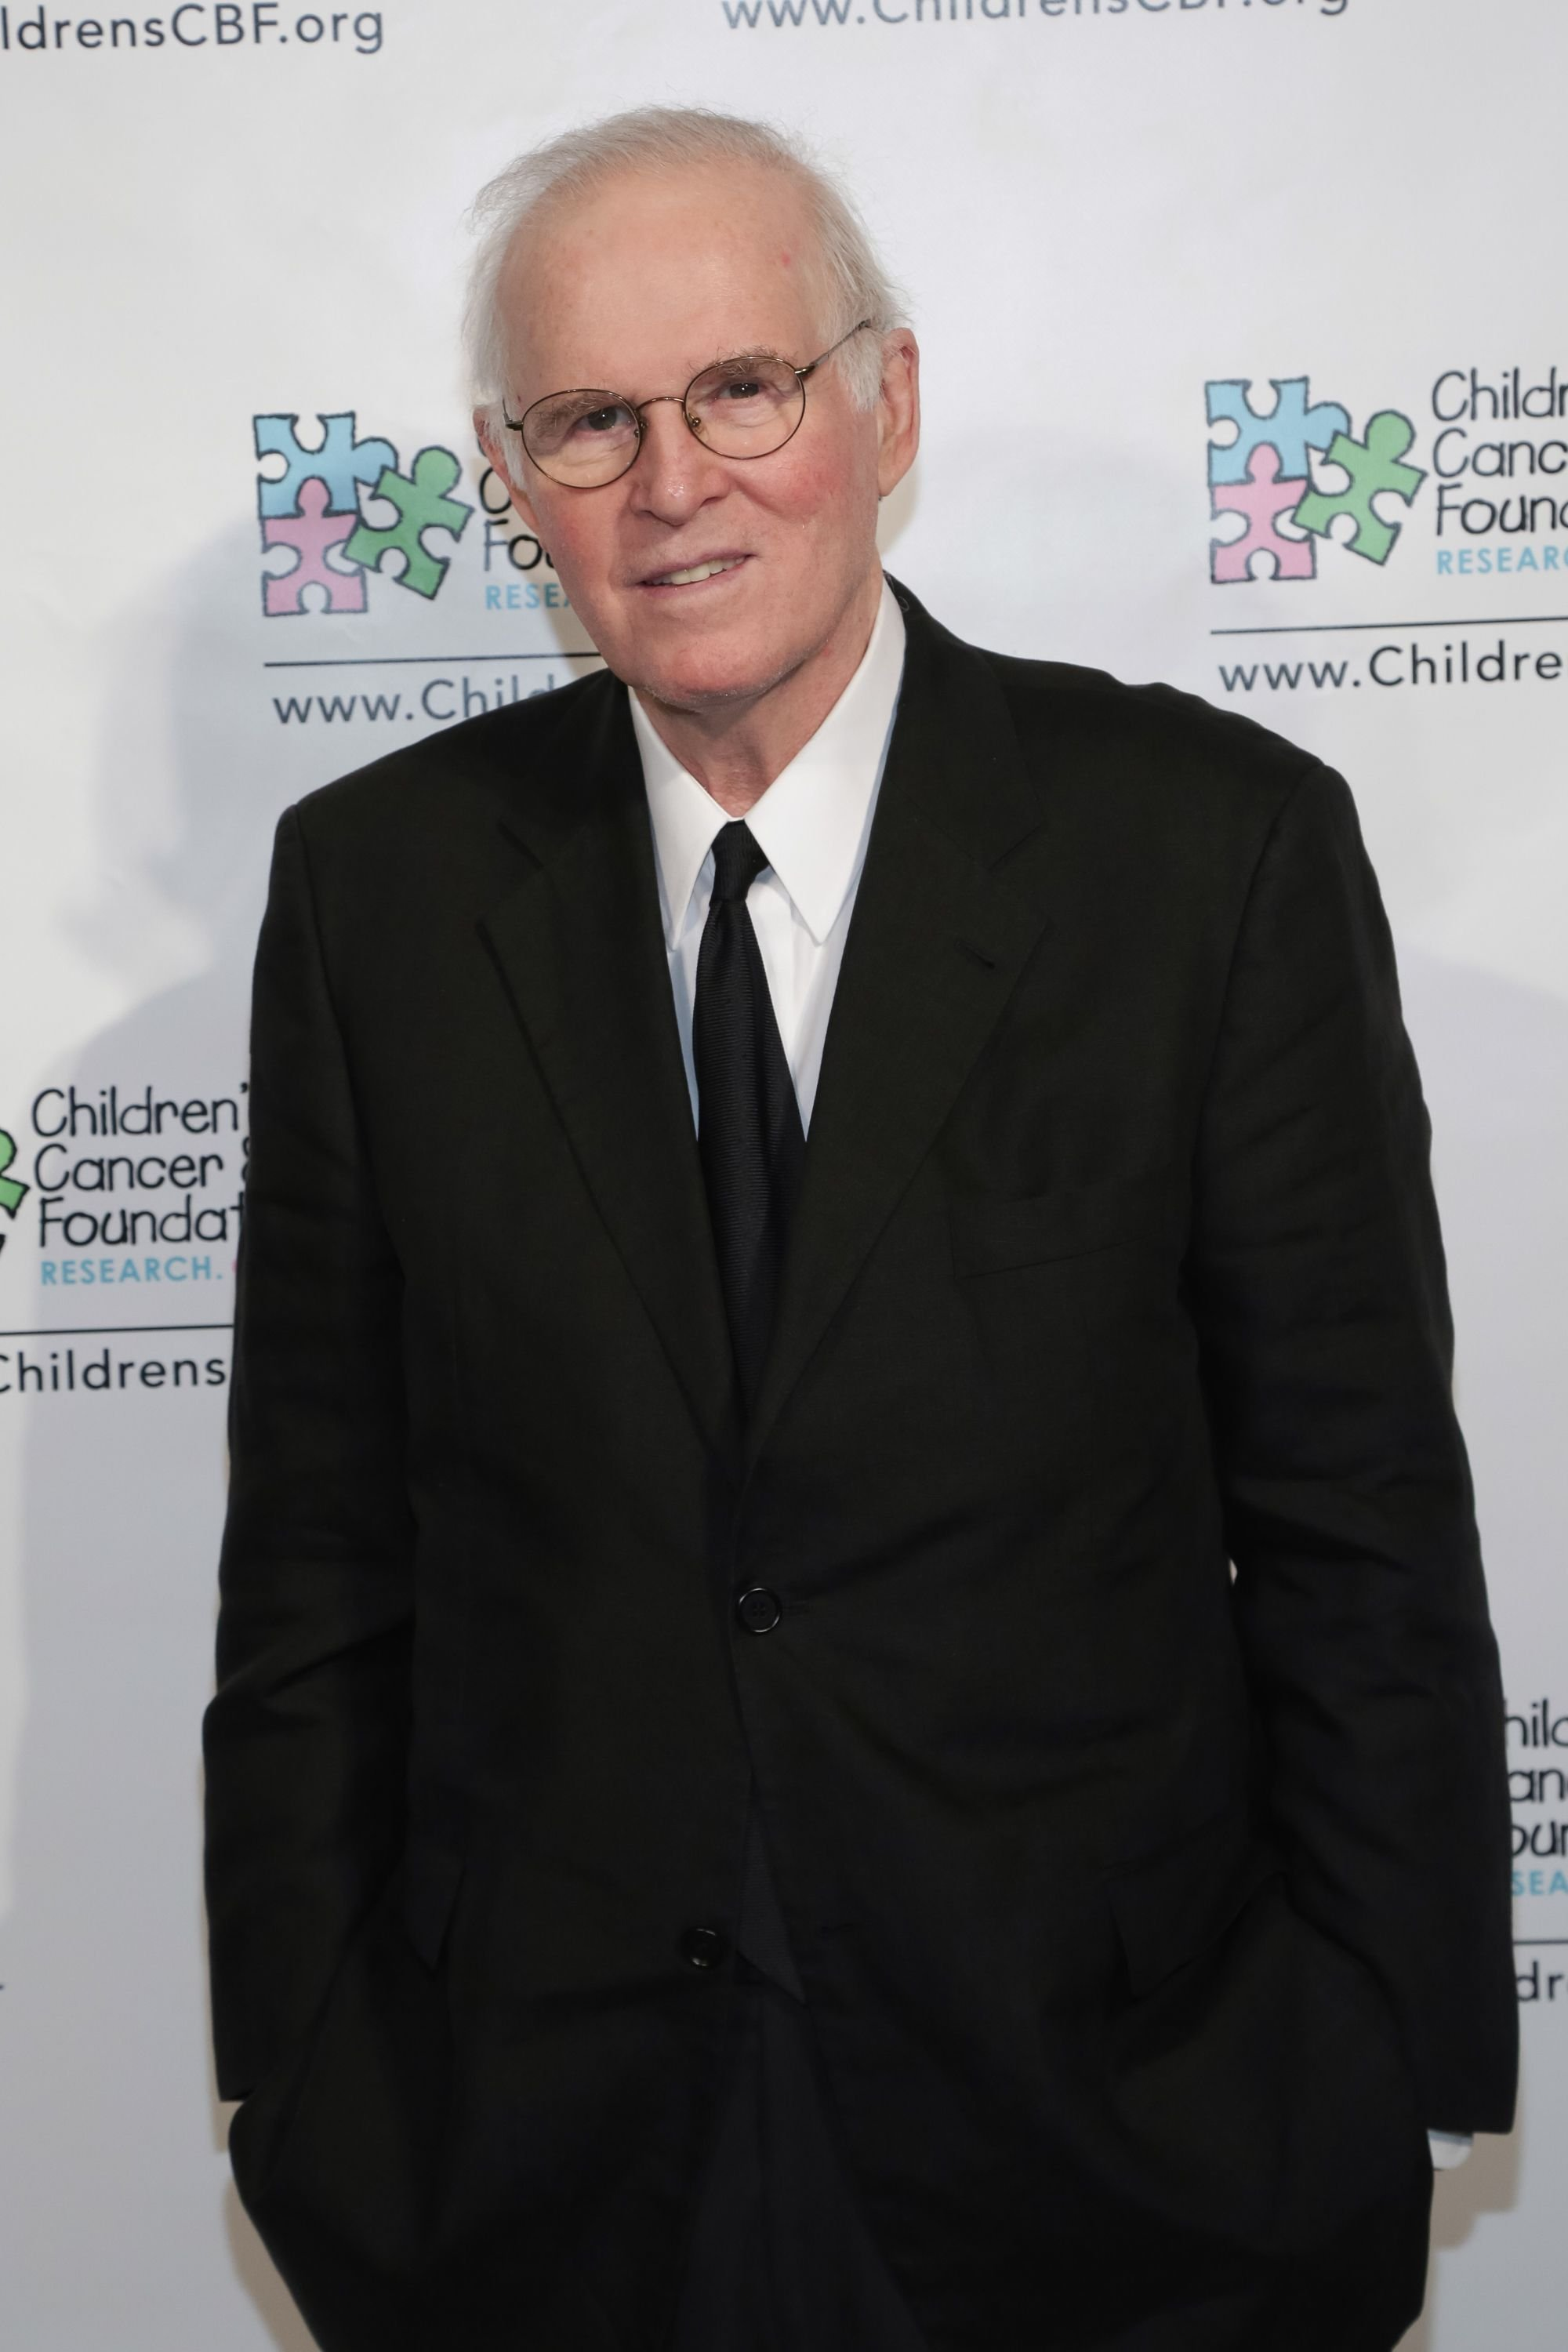 The late Charles Grodin atT he Children's Cancer and Blood Foundation Breakthrough Ball Benefit Gala at The Plaza Hotel - 5th Avenue on November 18, 2014 in New York City.   Photo: Getty Images